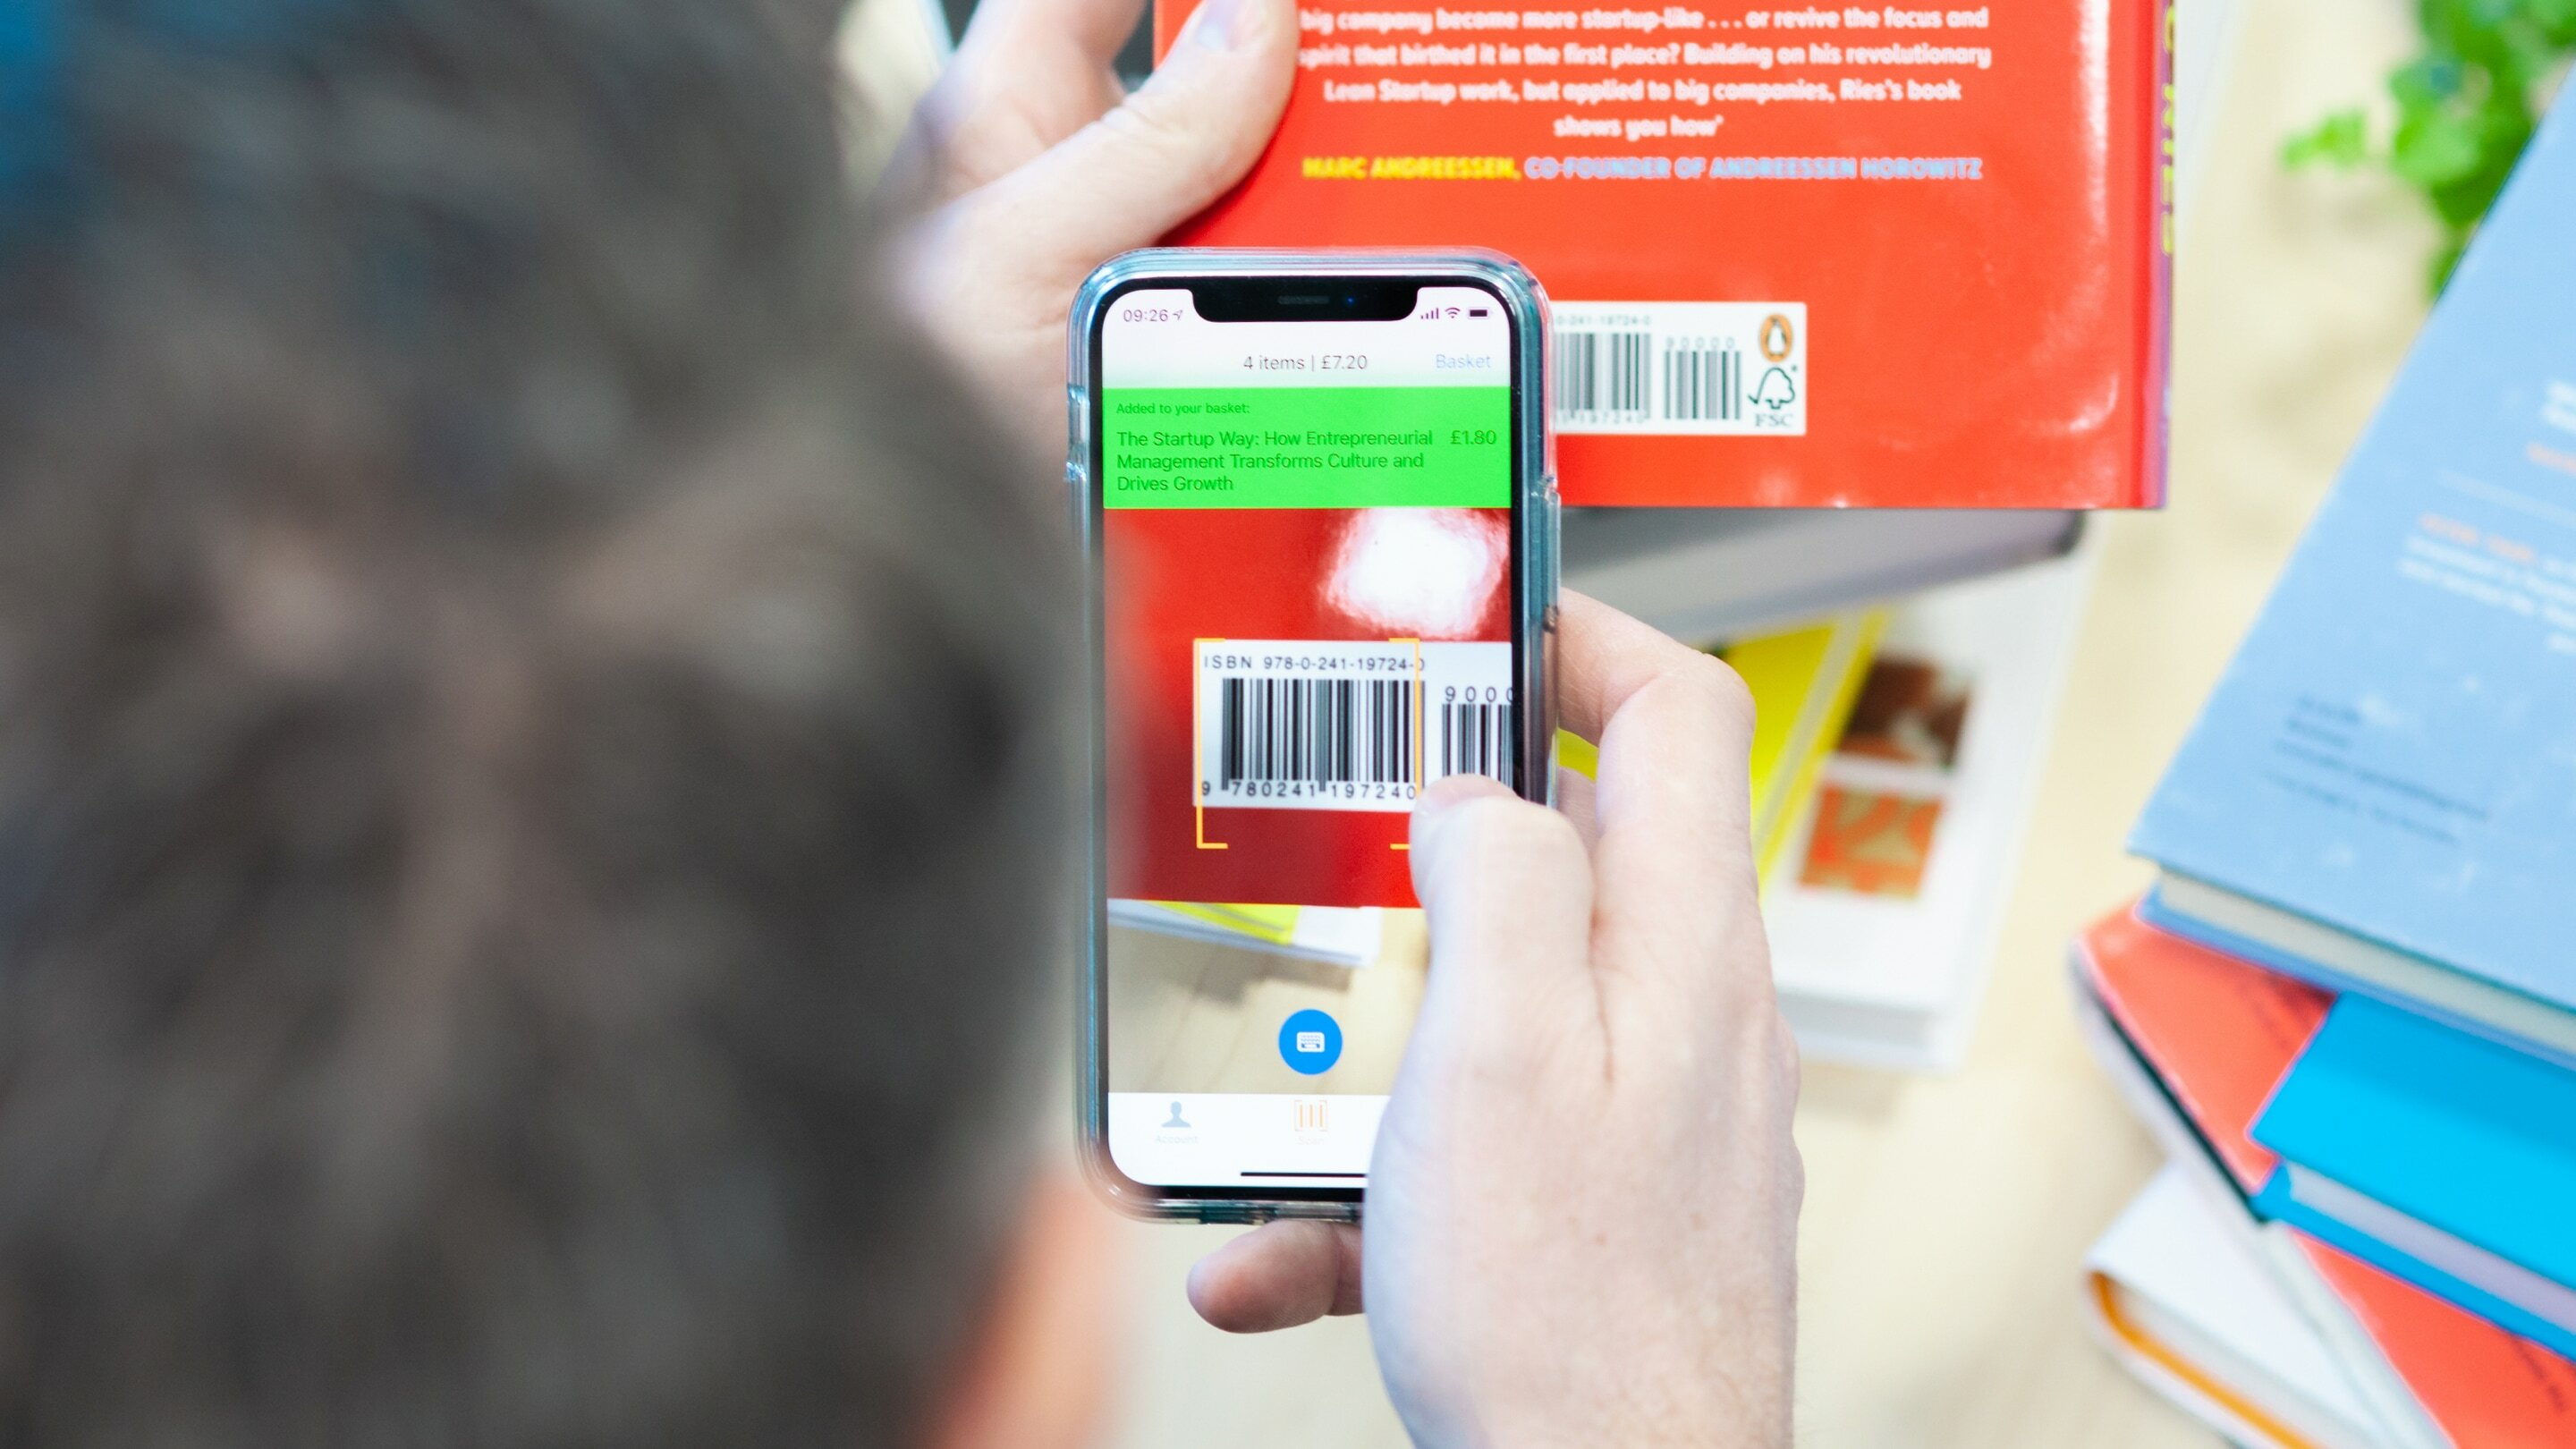 Ziffit app on iPhone being used to scan books